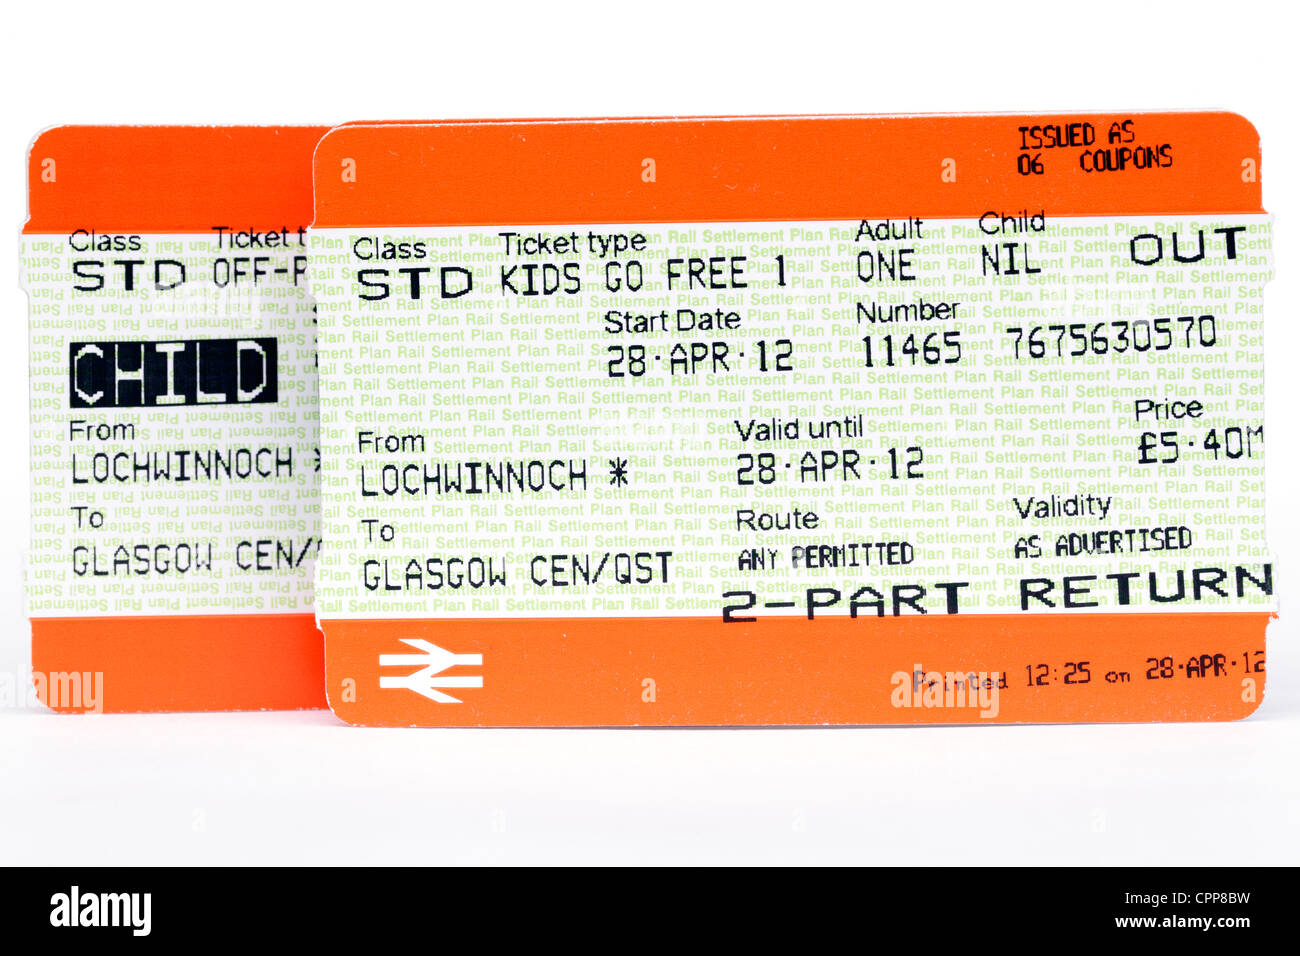 A Kids Go Free with an adult train ticket, Scotland, UK - Stock Image